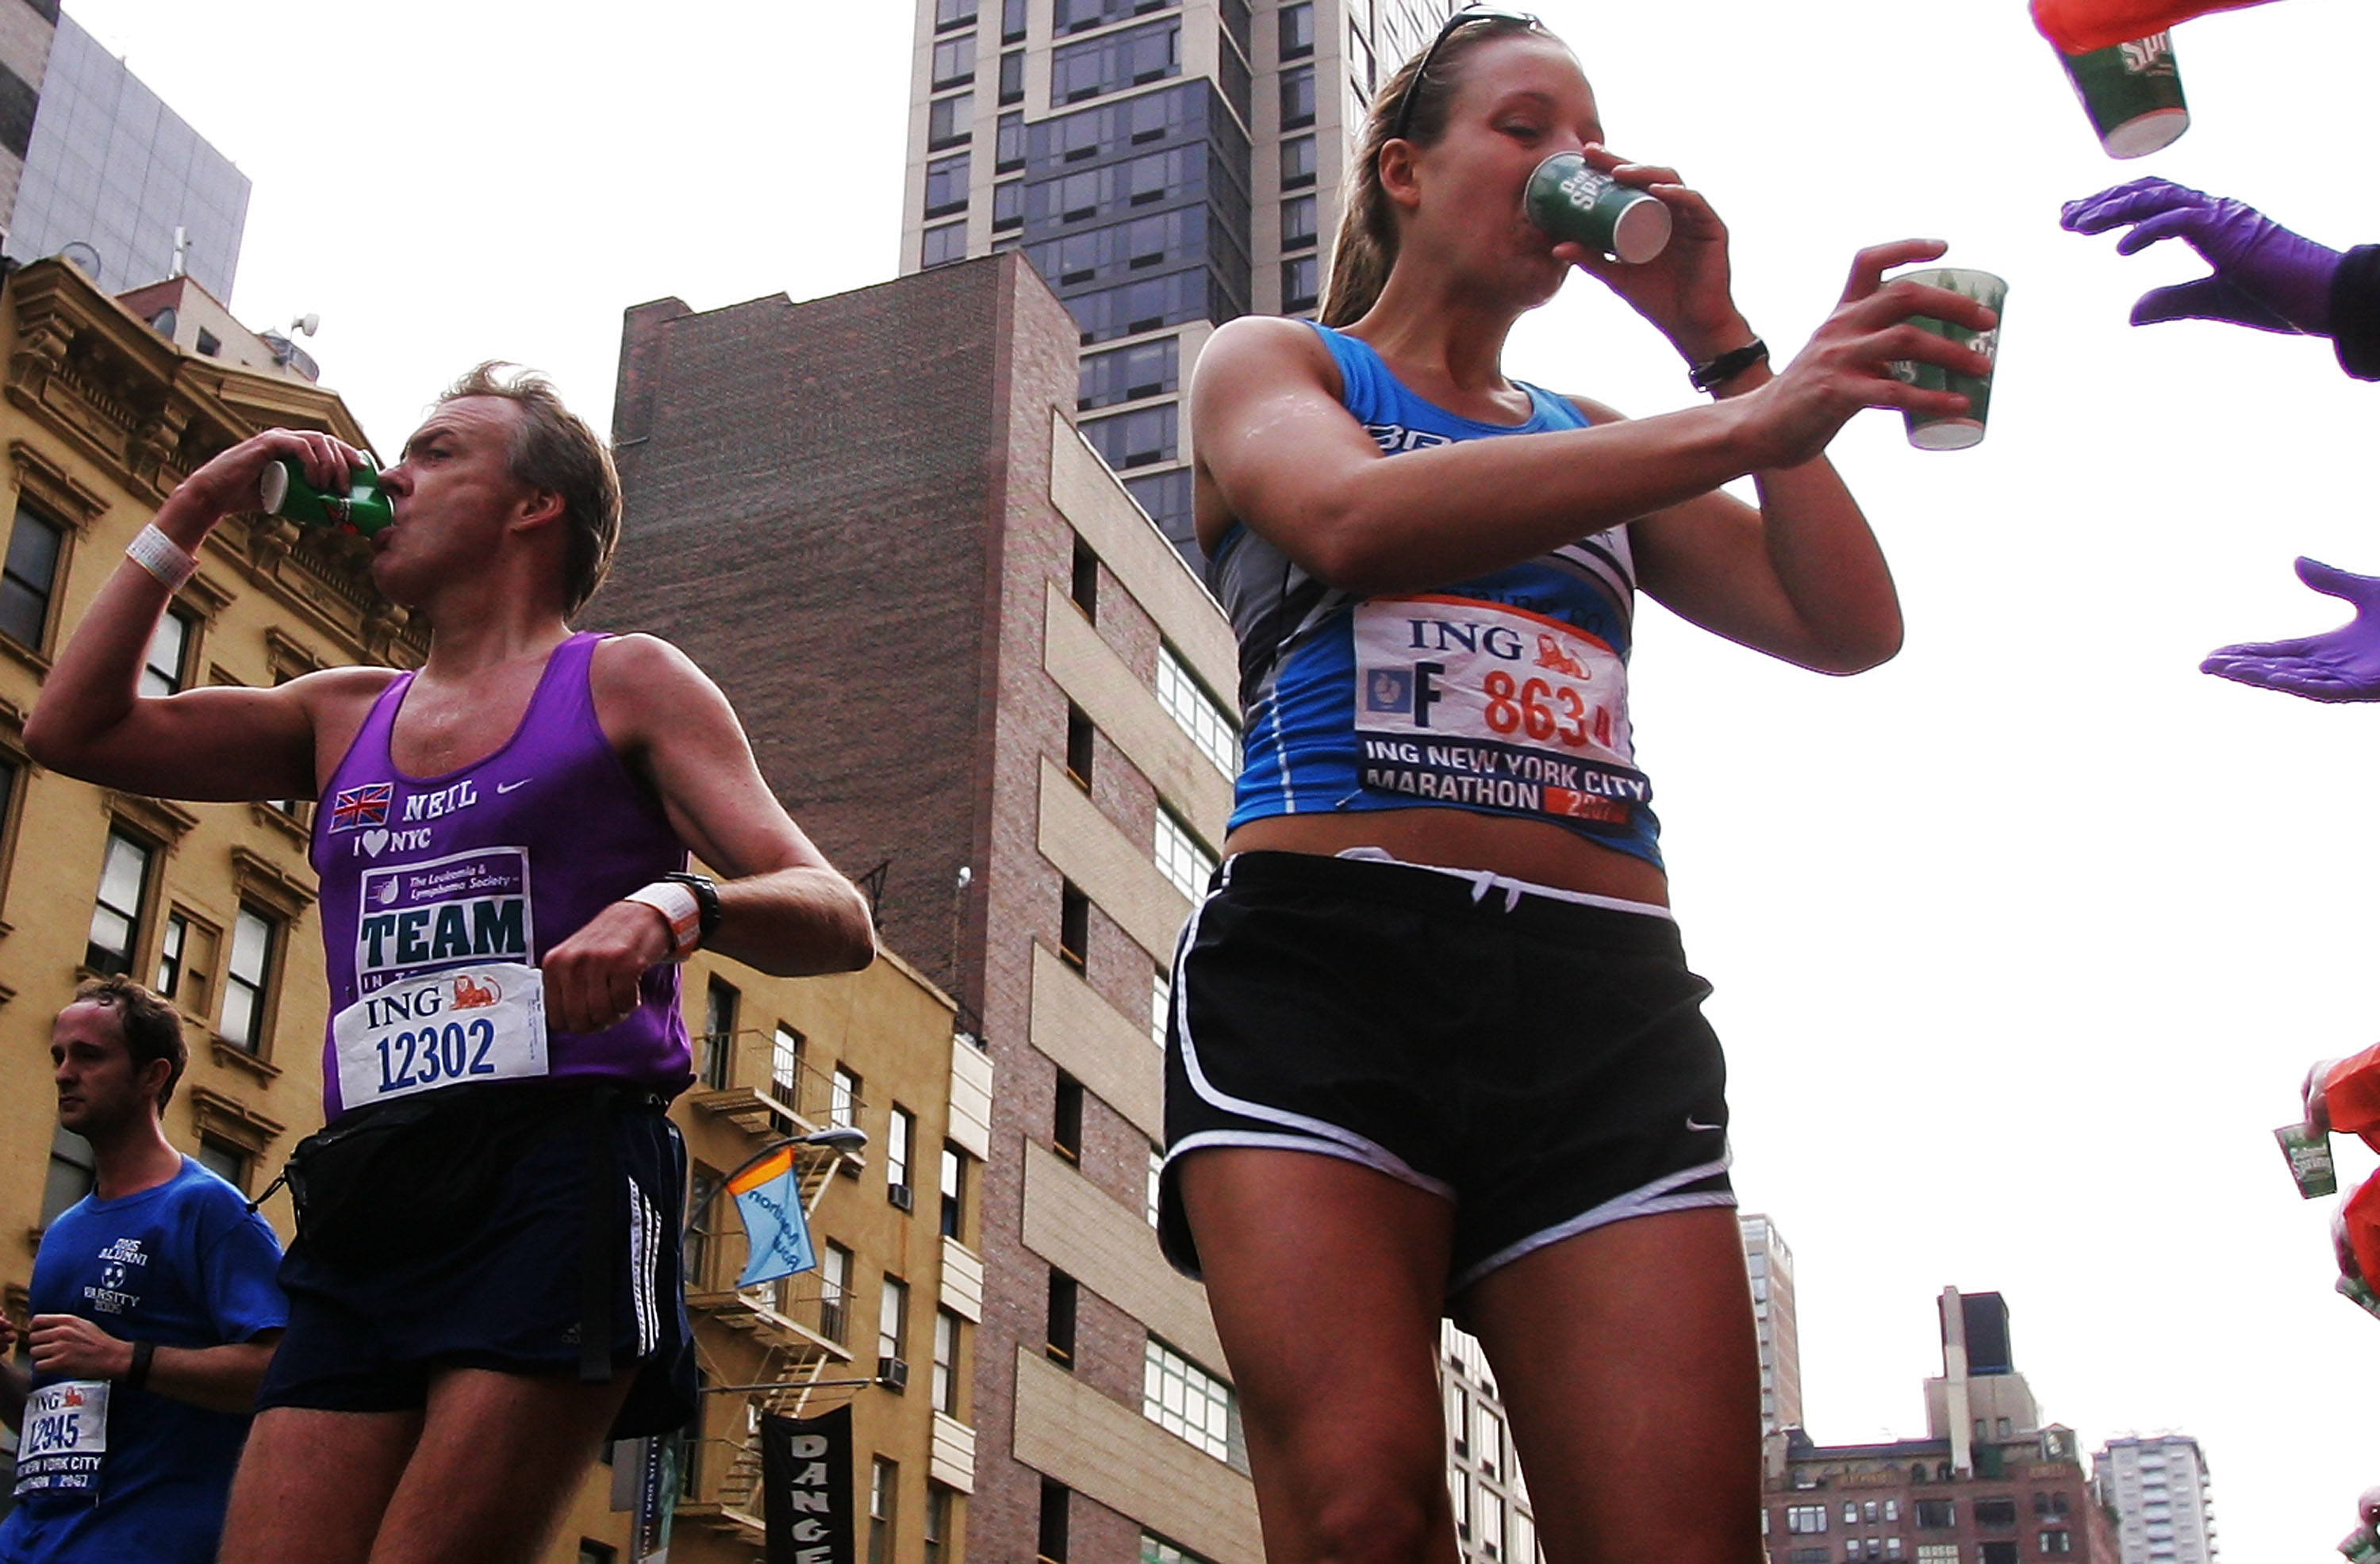 Competitors grab water from a drink station as they run down First Avenue during the 2007 New York City Marathon on November 4, 2007 in New York City.